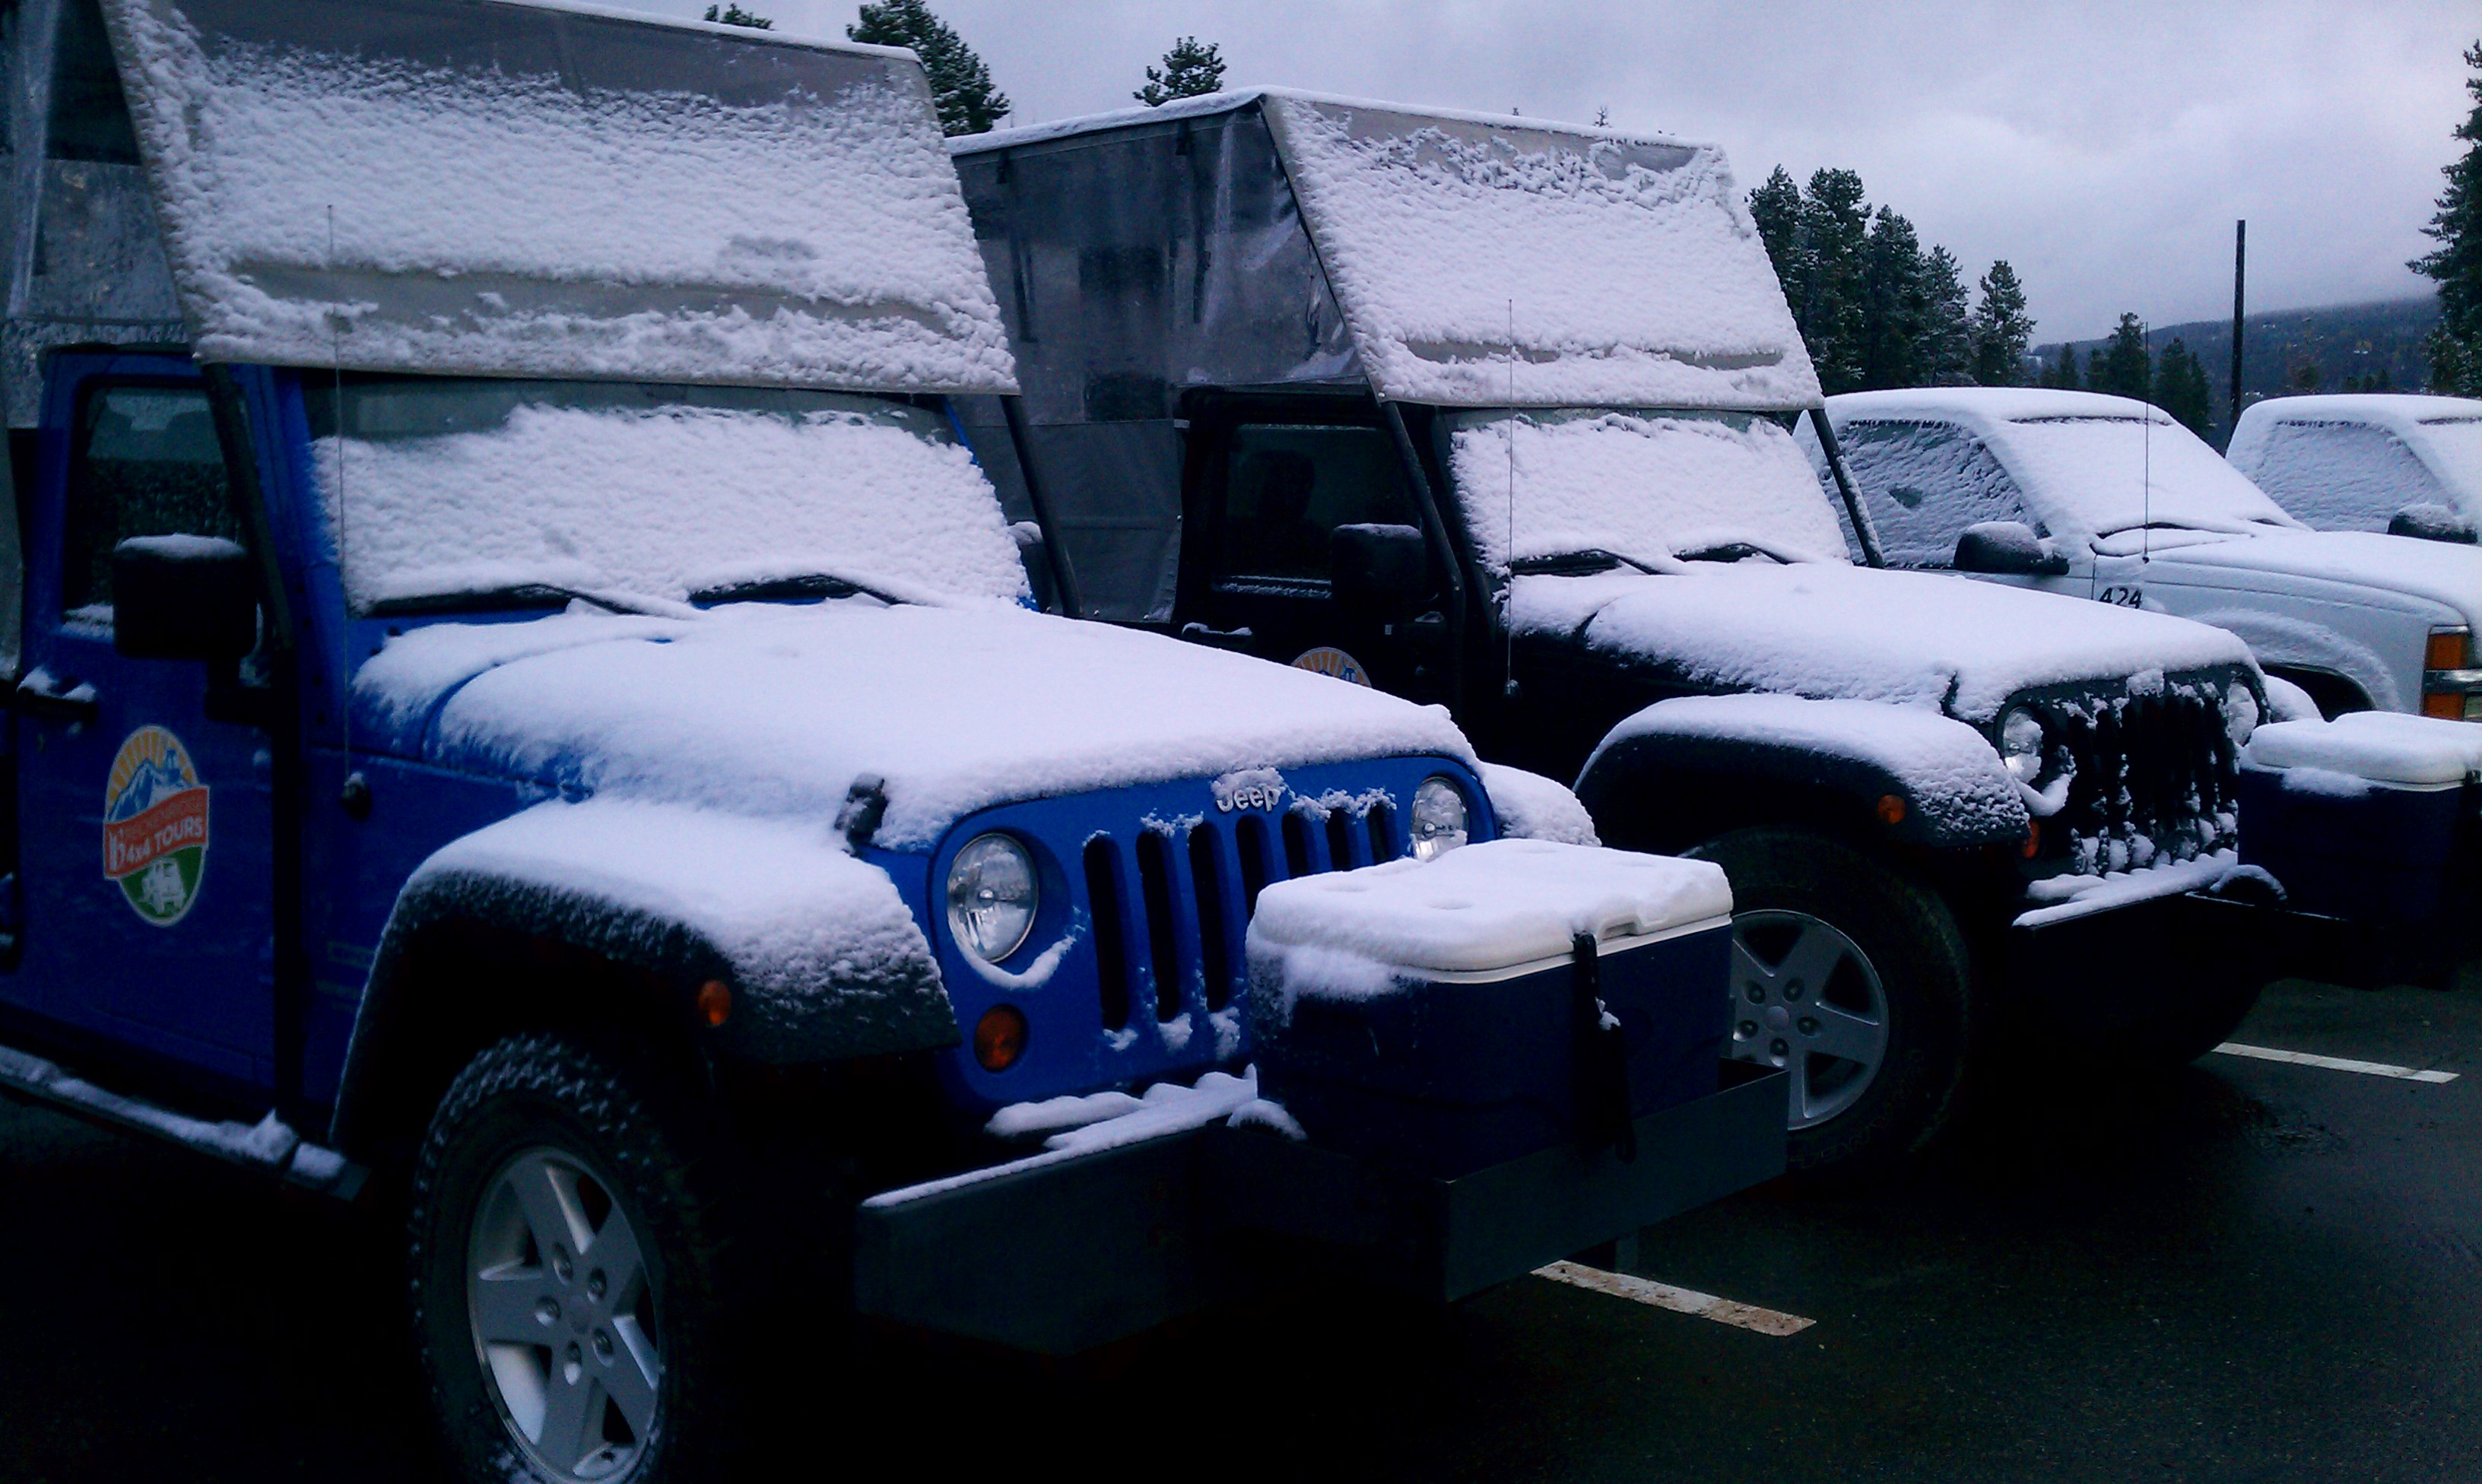 4x4 vehicles ready for weather